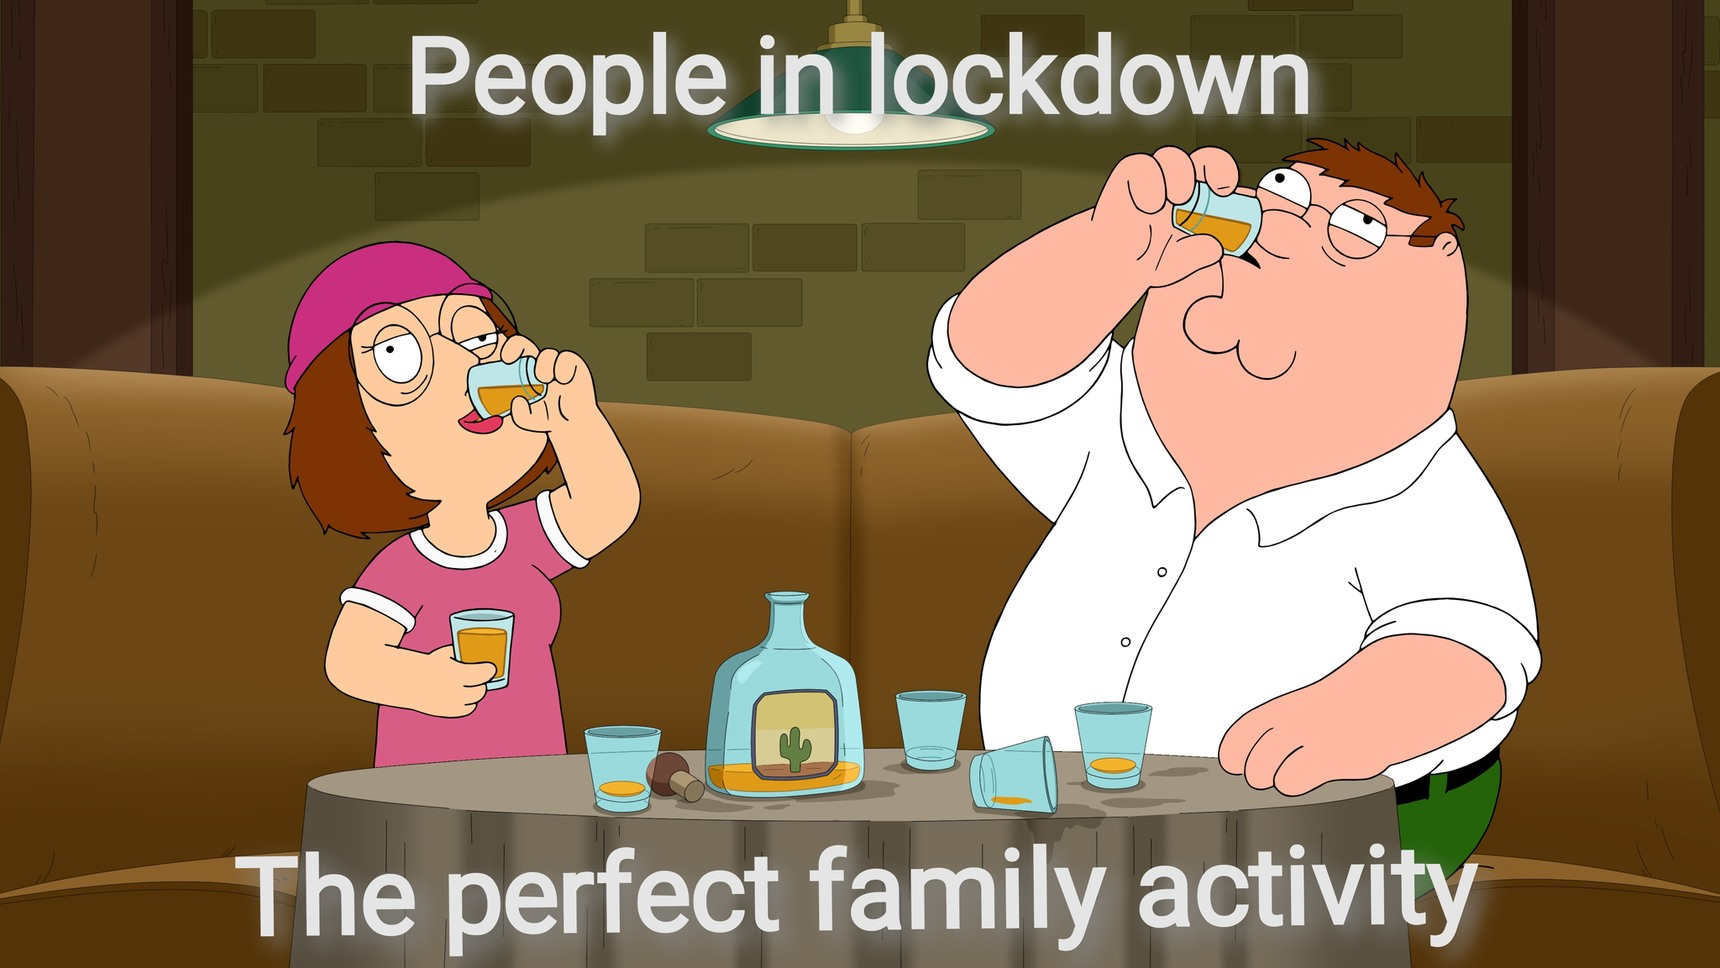 Drinking in lockdown - meme